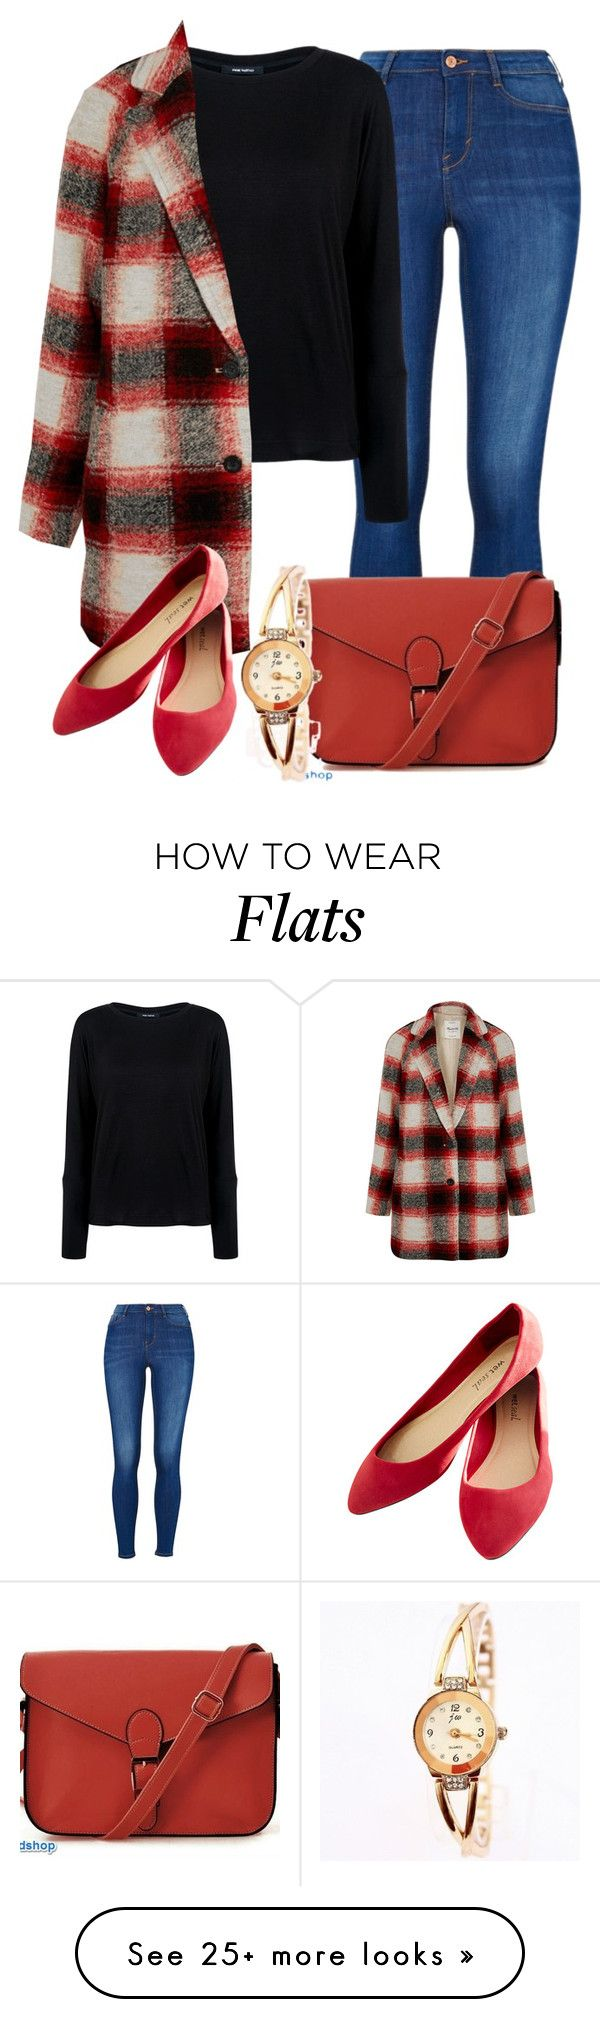 """""""Fall Red Fashion 2015"""" by myfriendshop on Polyvore featuring Pink Tartan, Madewell and Wet Seal"""